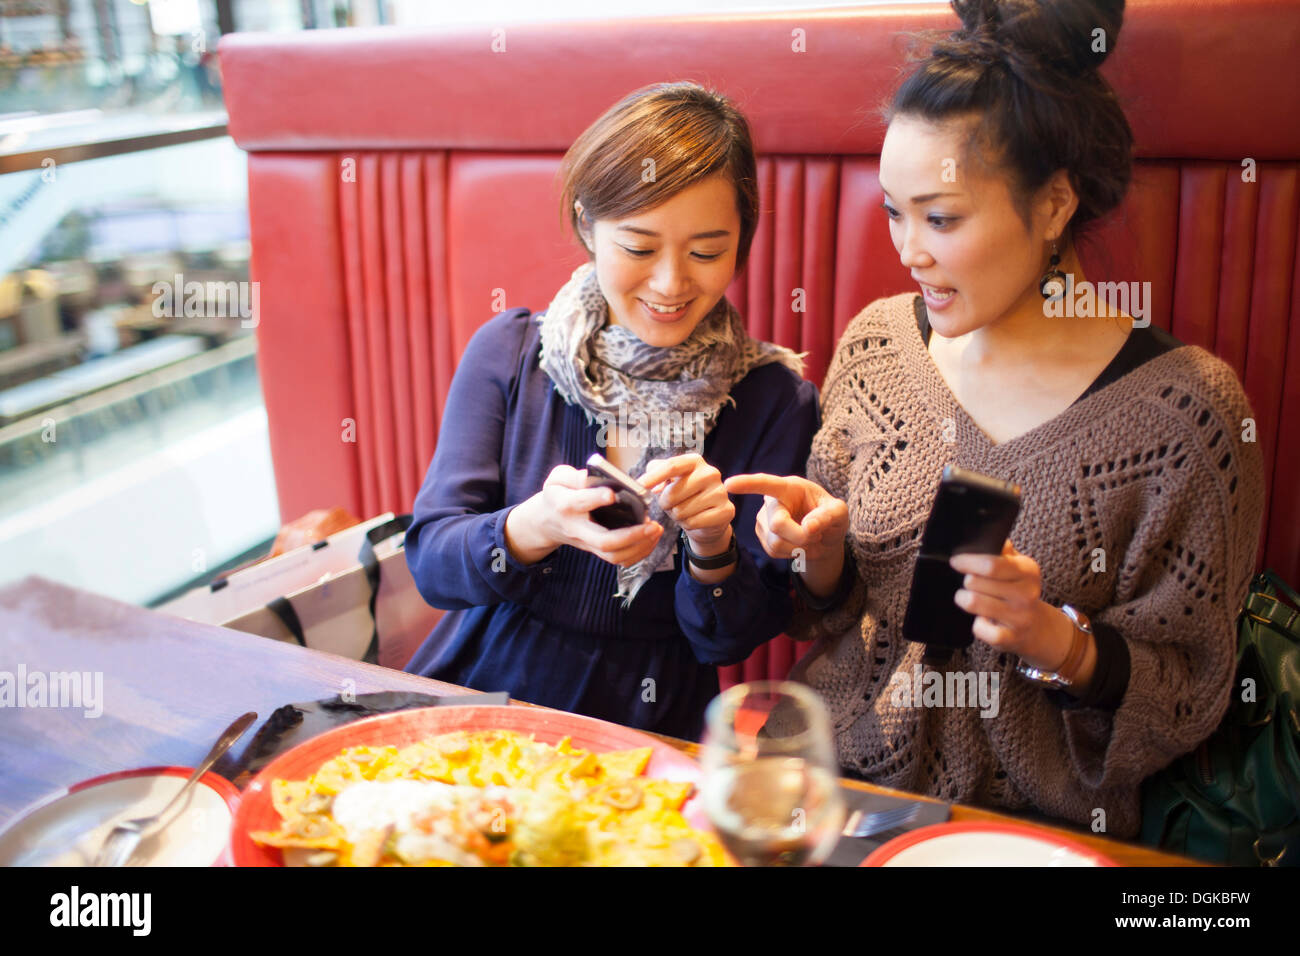 Young women using cell phones in restaurant - Stock Image